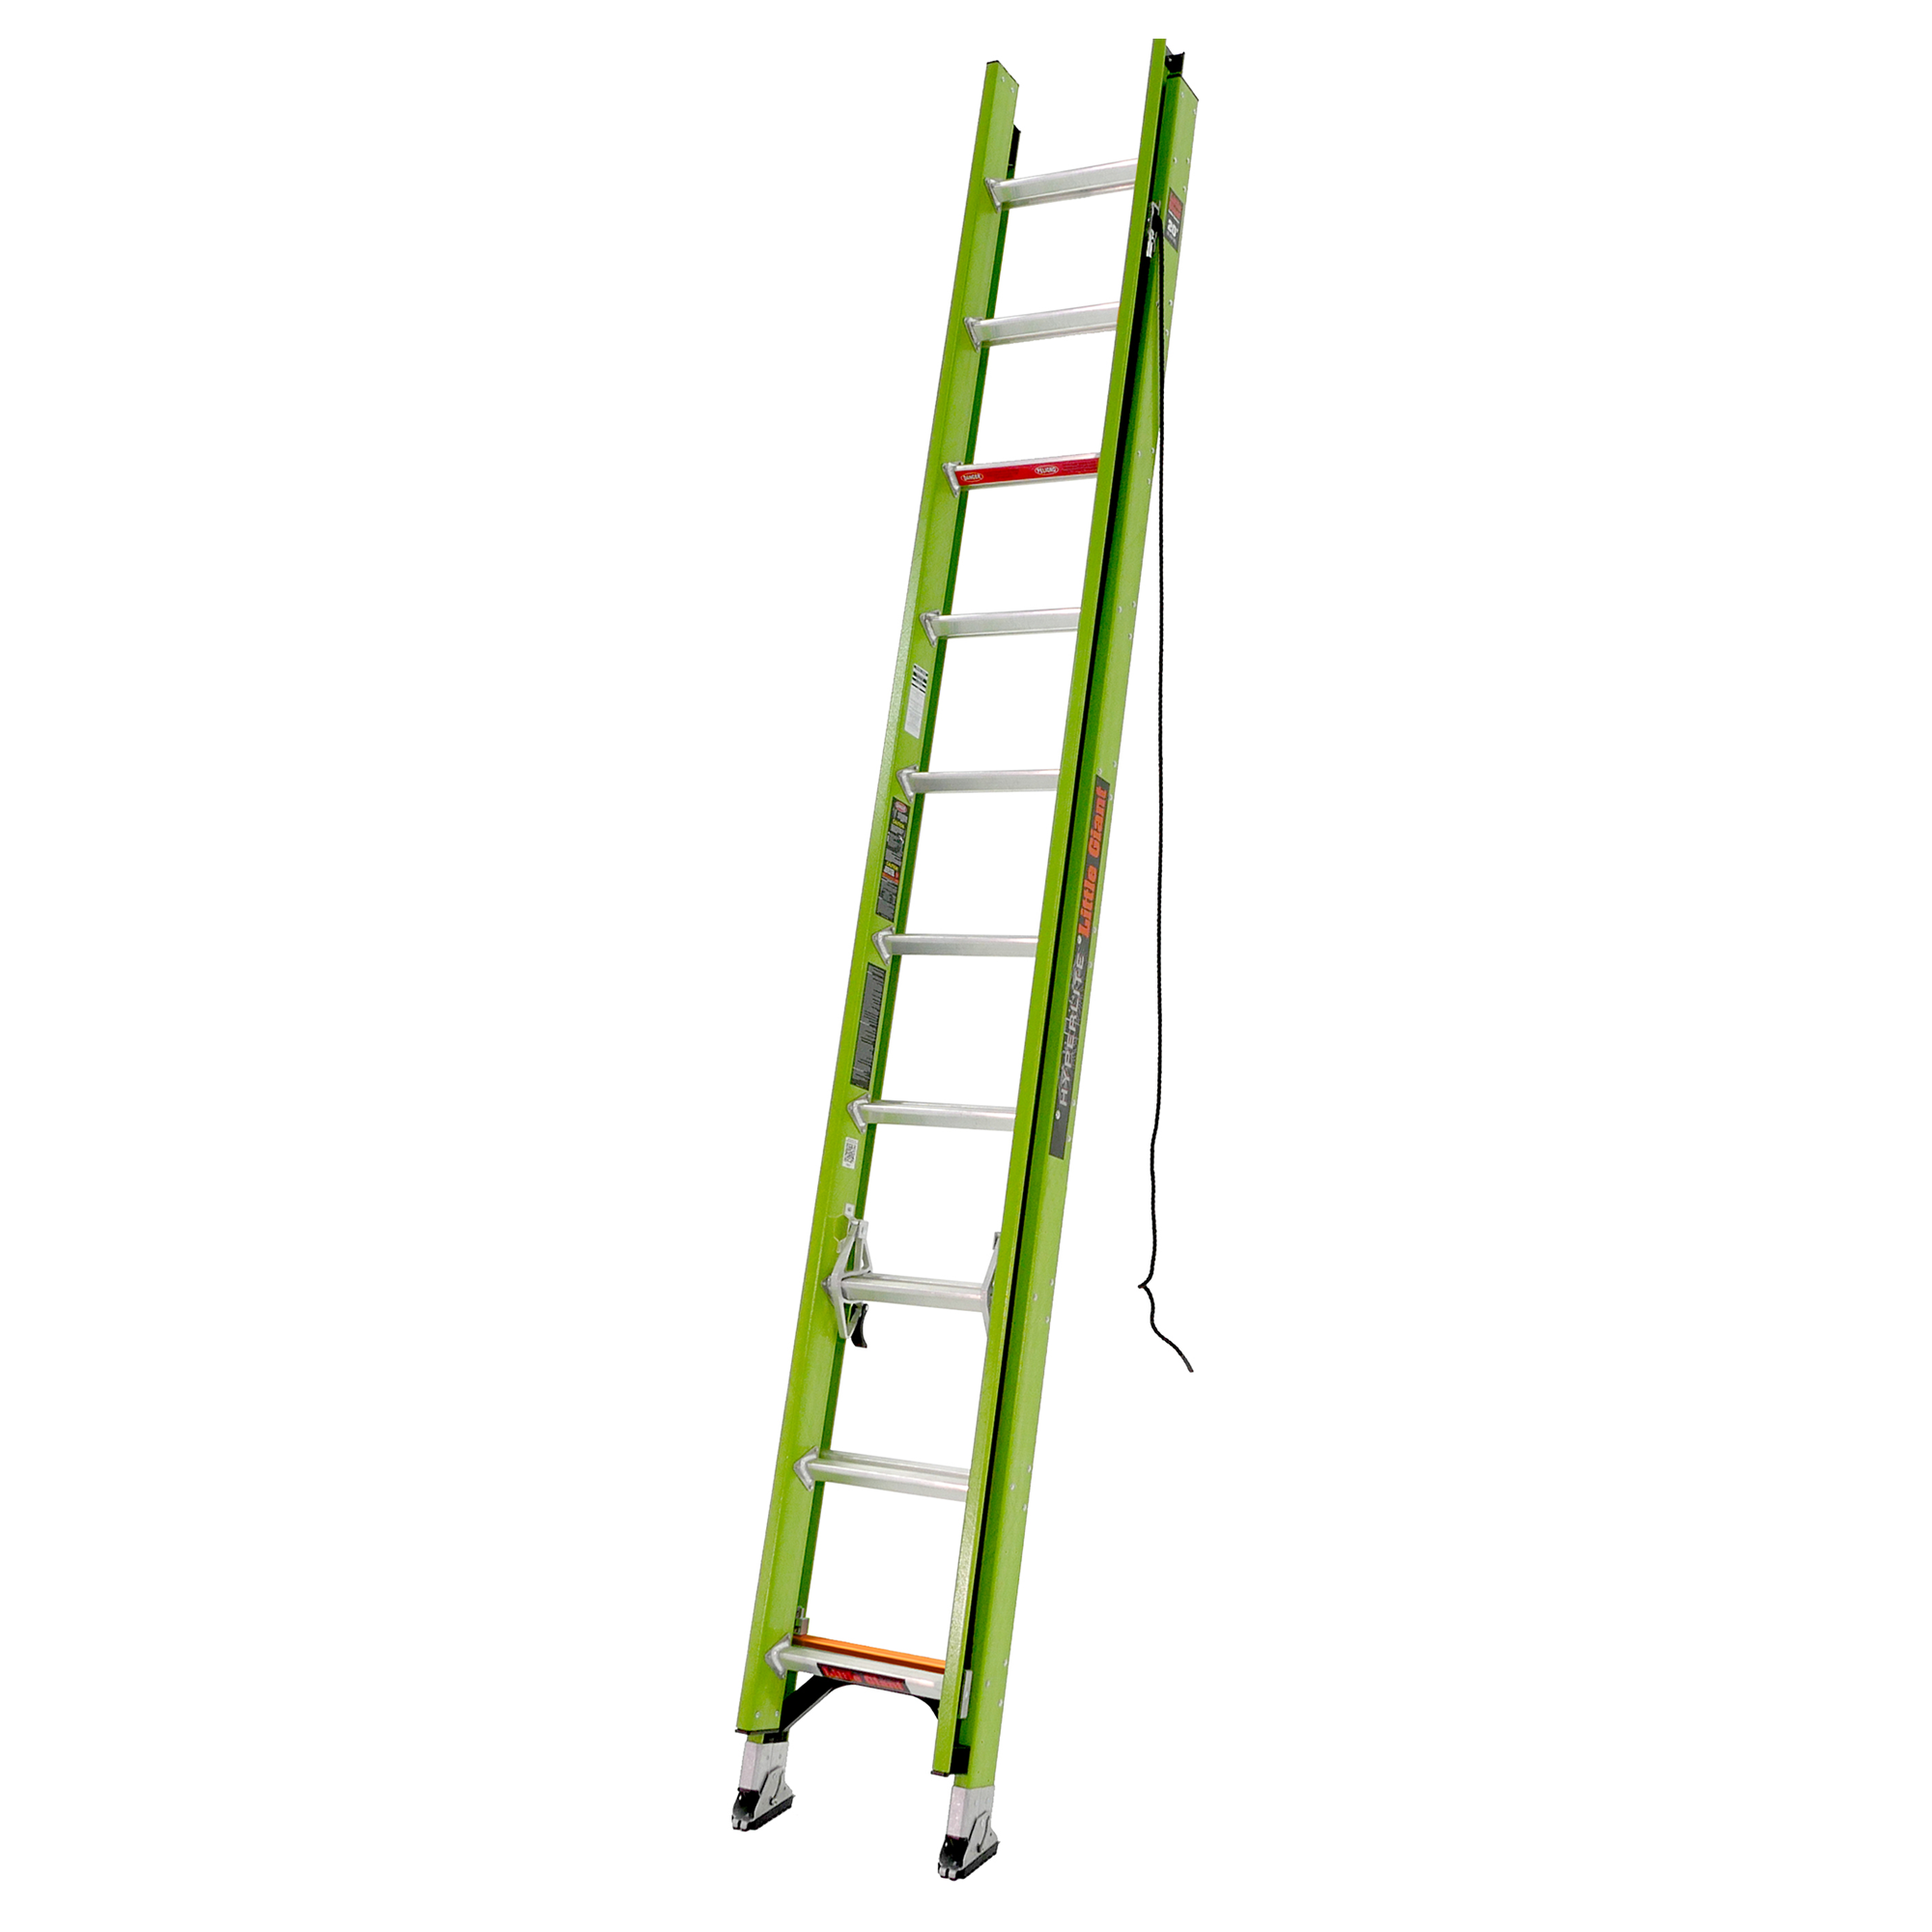 20 Ft. HyperLite Fiberglass Extension Ladder - Type IAA